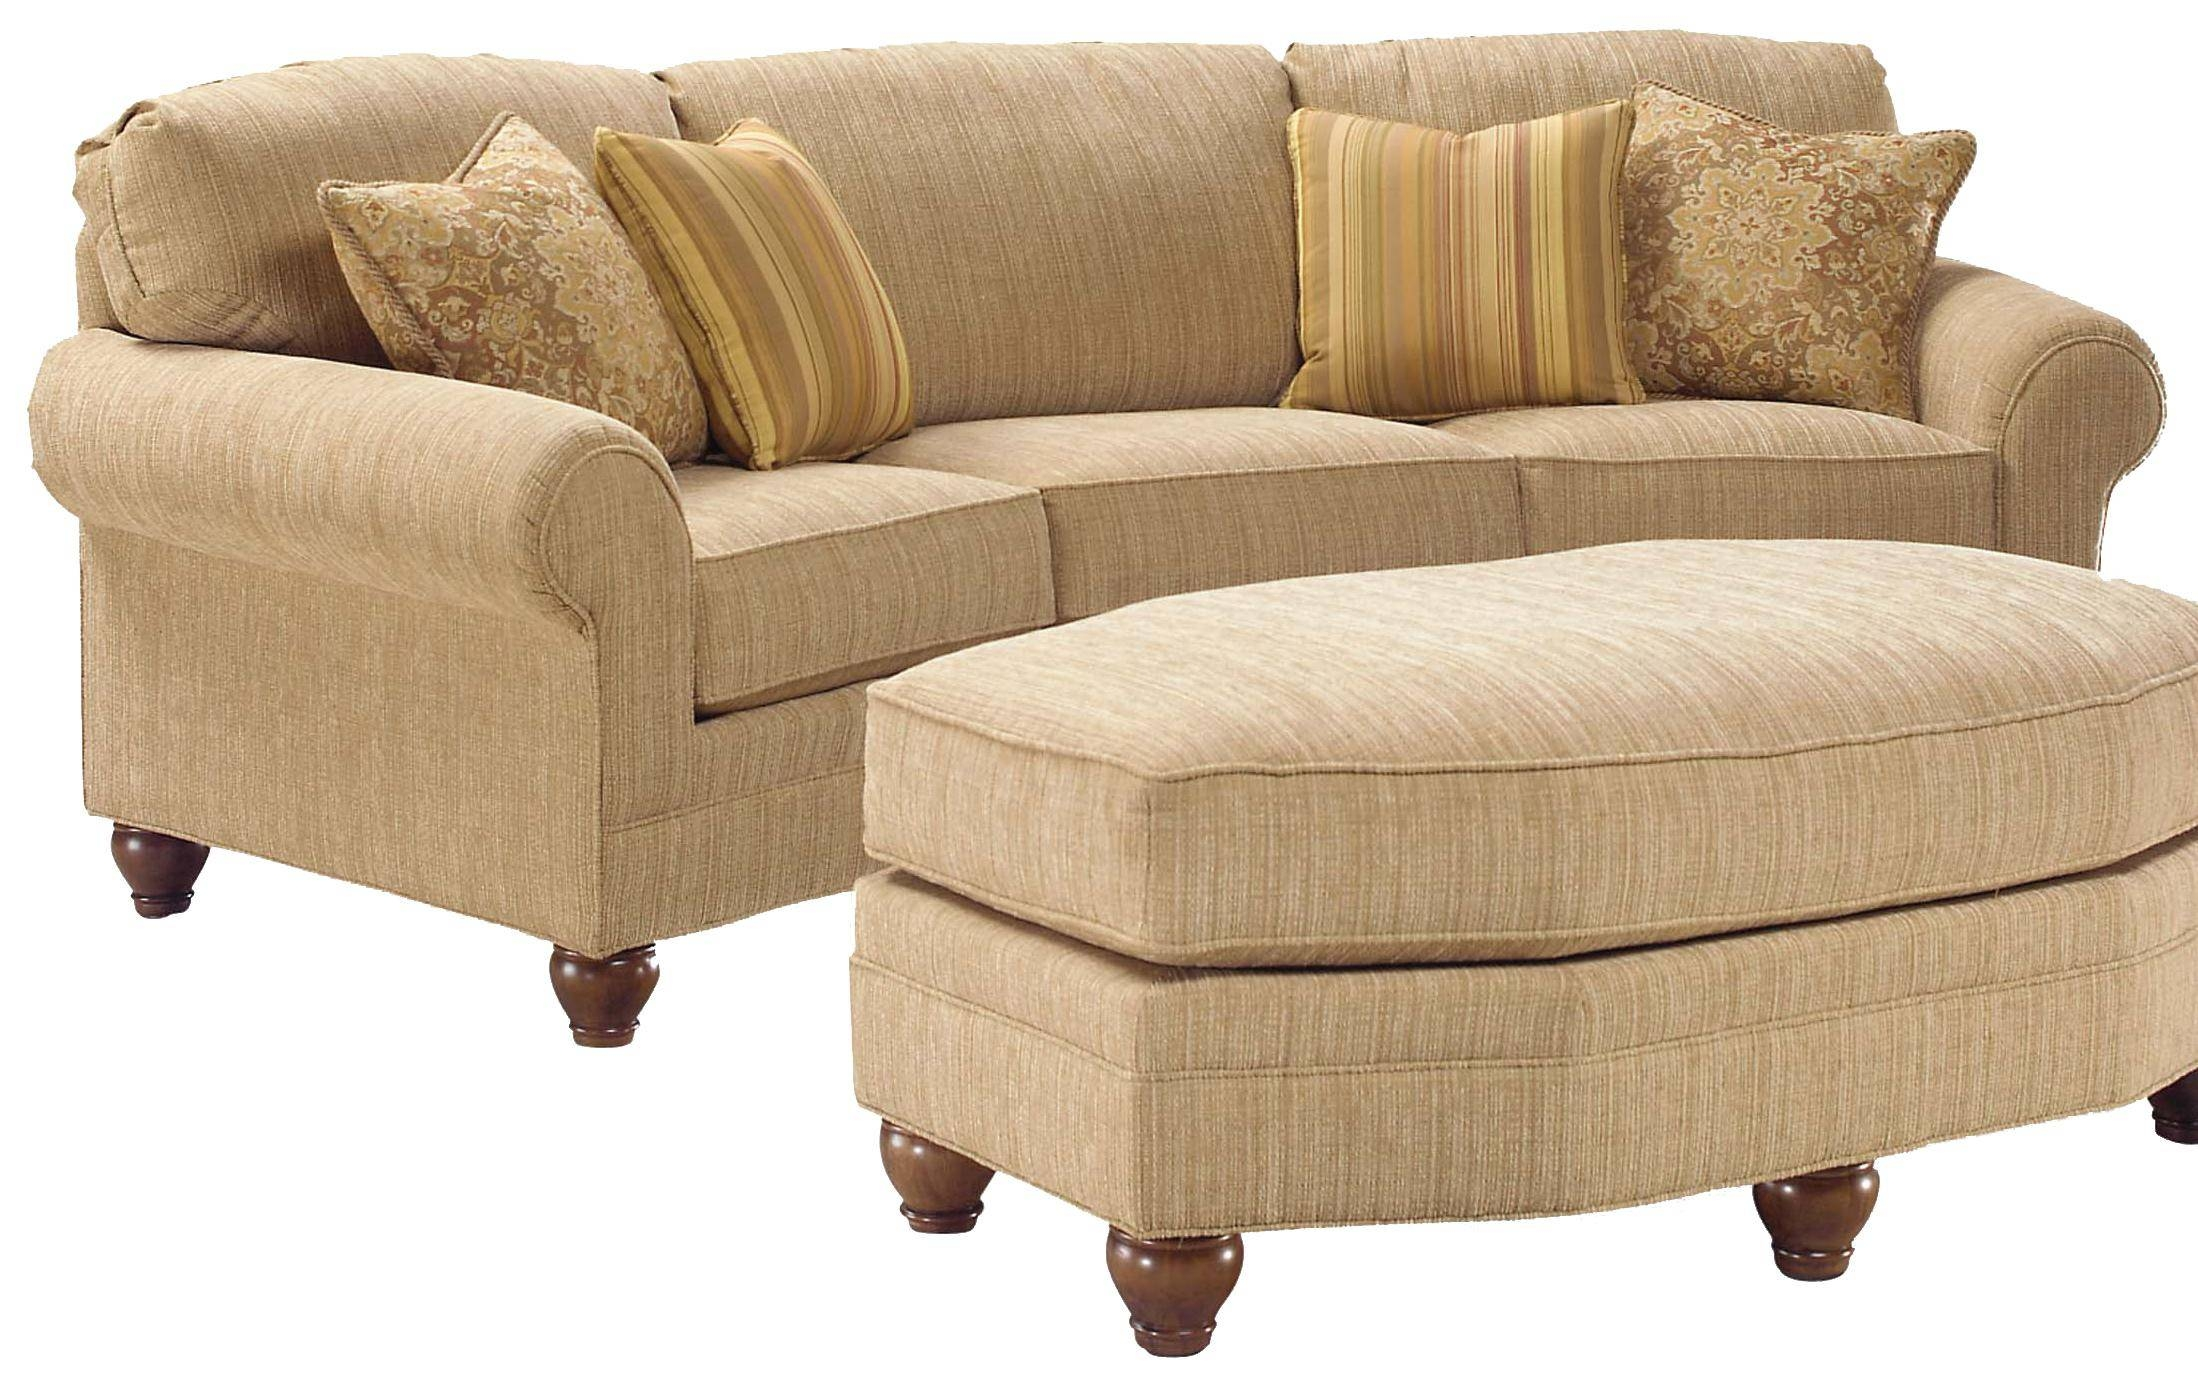 Furniture: Luxury Curved Sectional Sofa For Living Room Furniture with regard to Circular Sofa Chairs (Image 8 of 30)